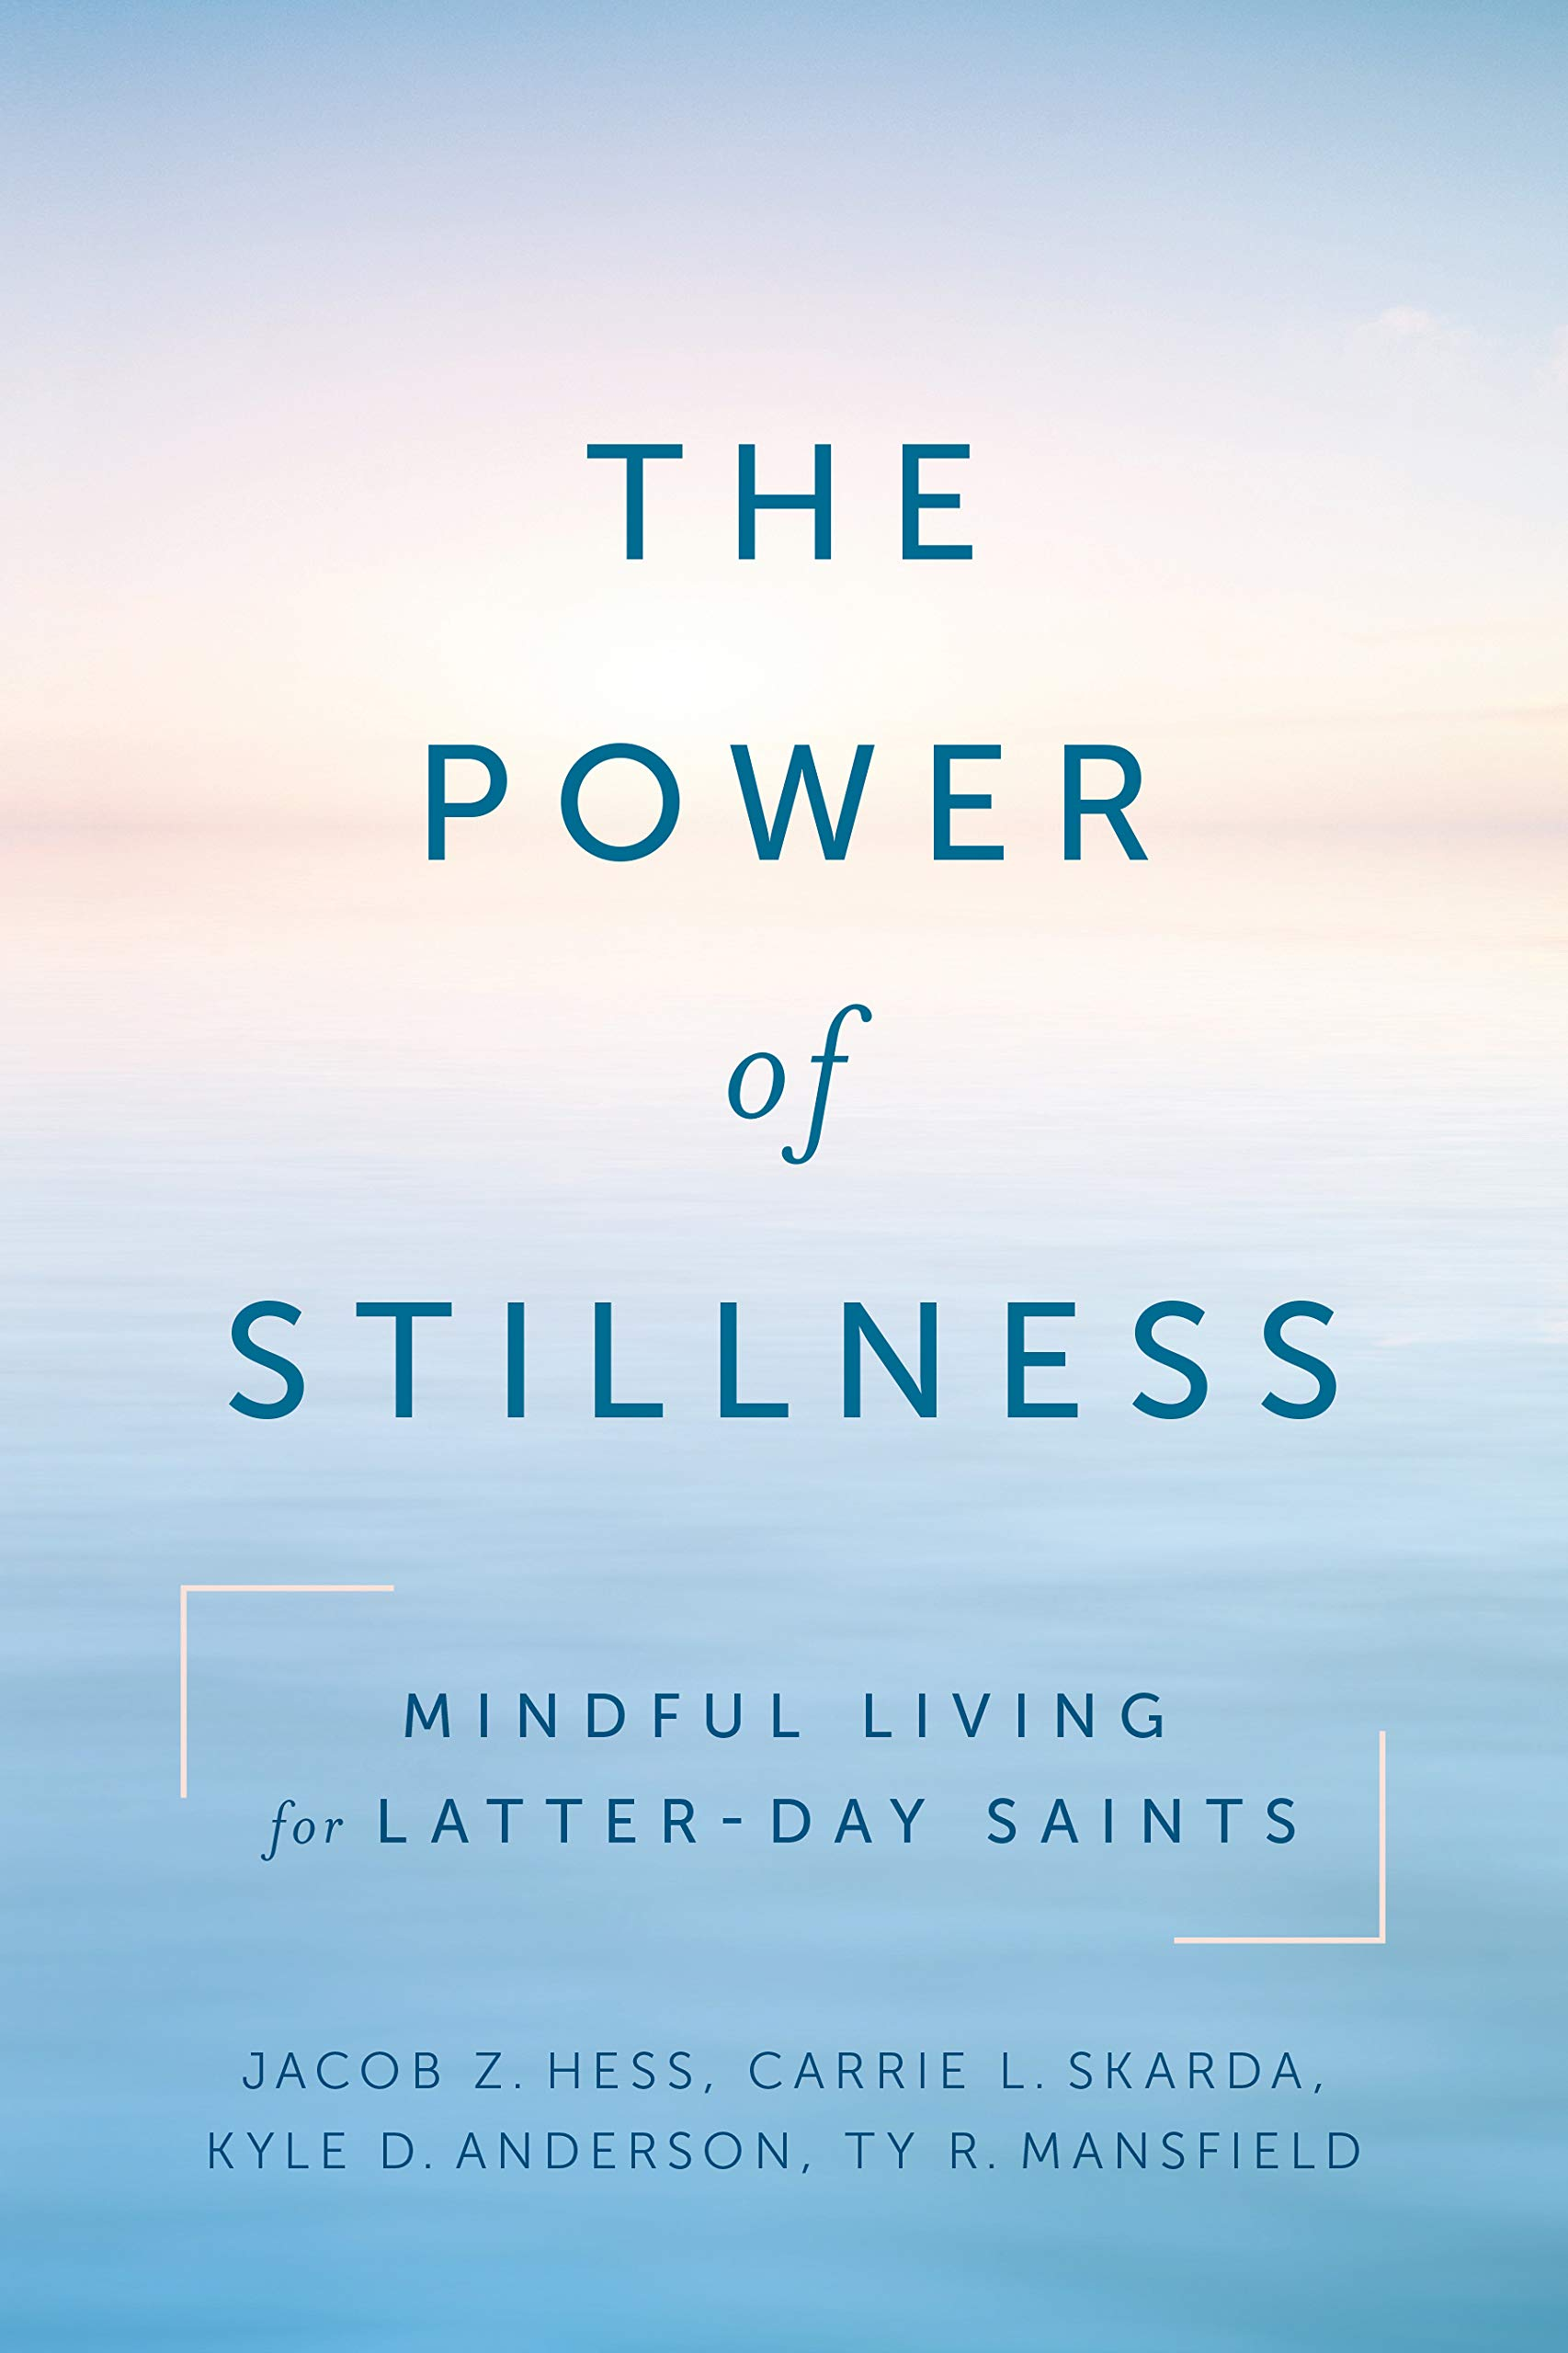 The Power of Stillness: Mindful Living for Latter-day Saints